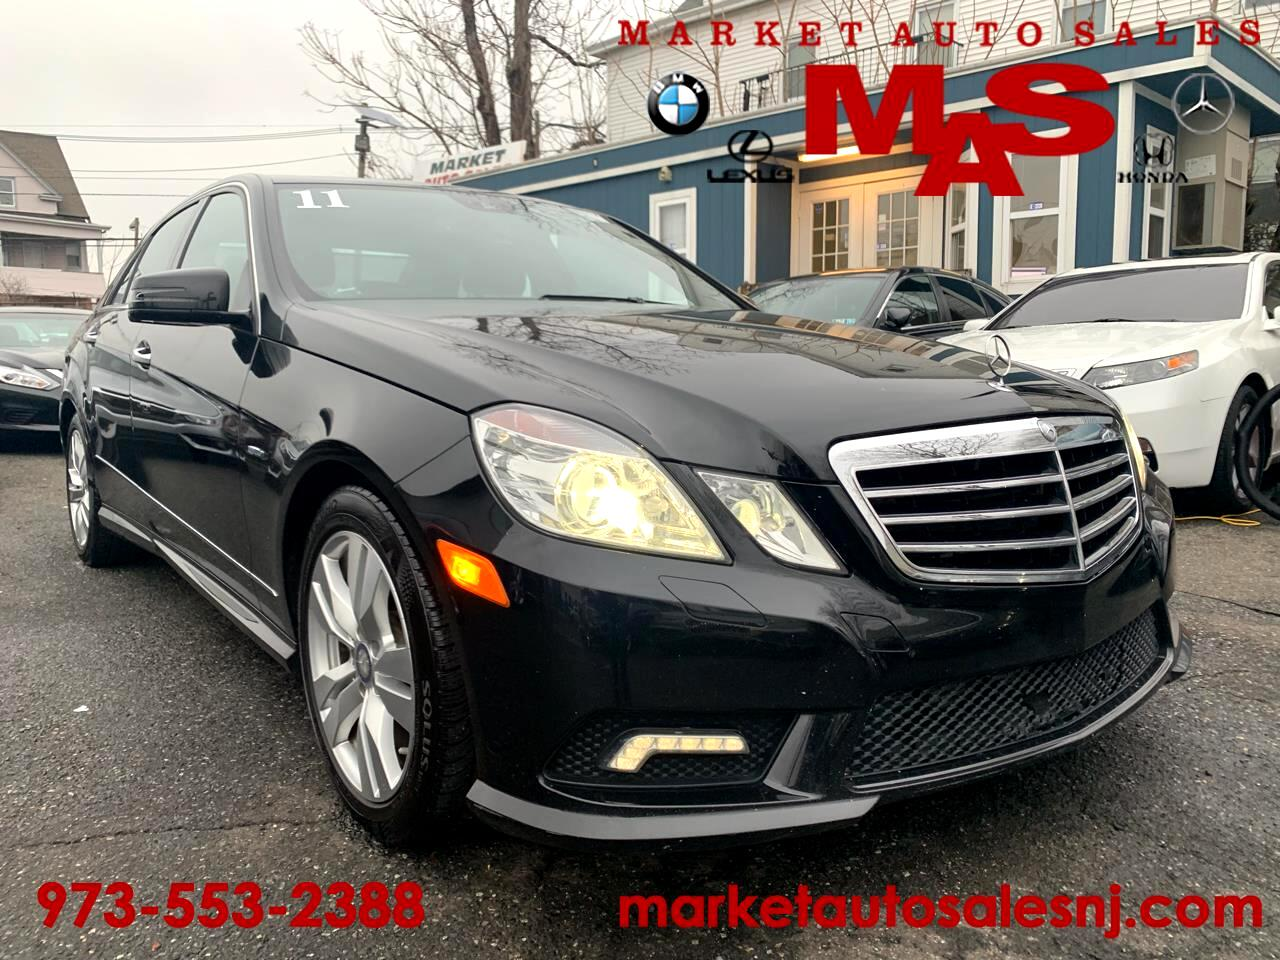 2011 Mercedes-Benz E-Class E350 BlueTEC Sedan